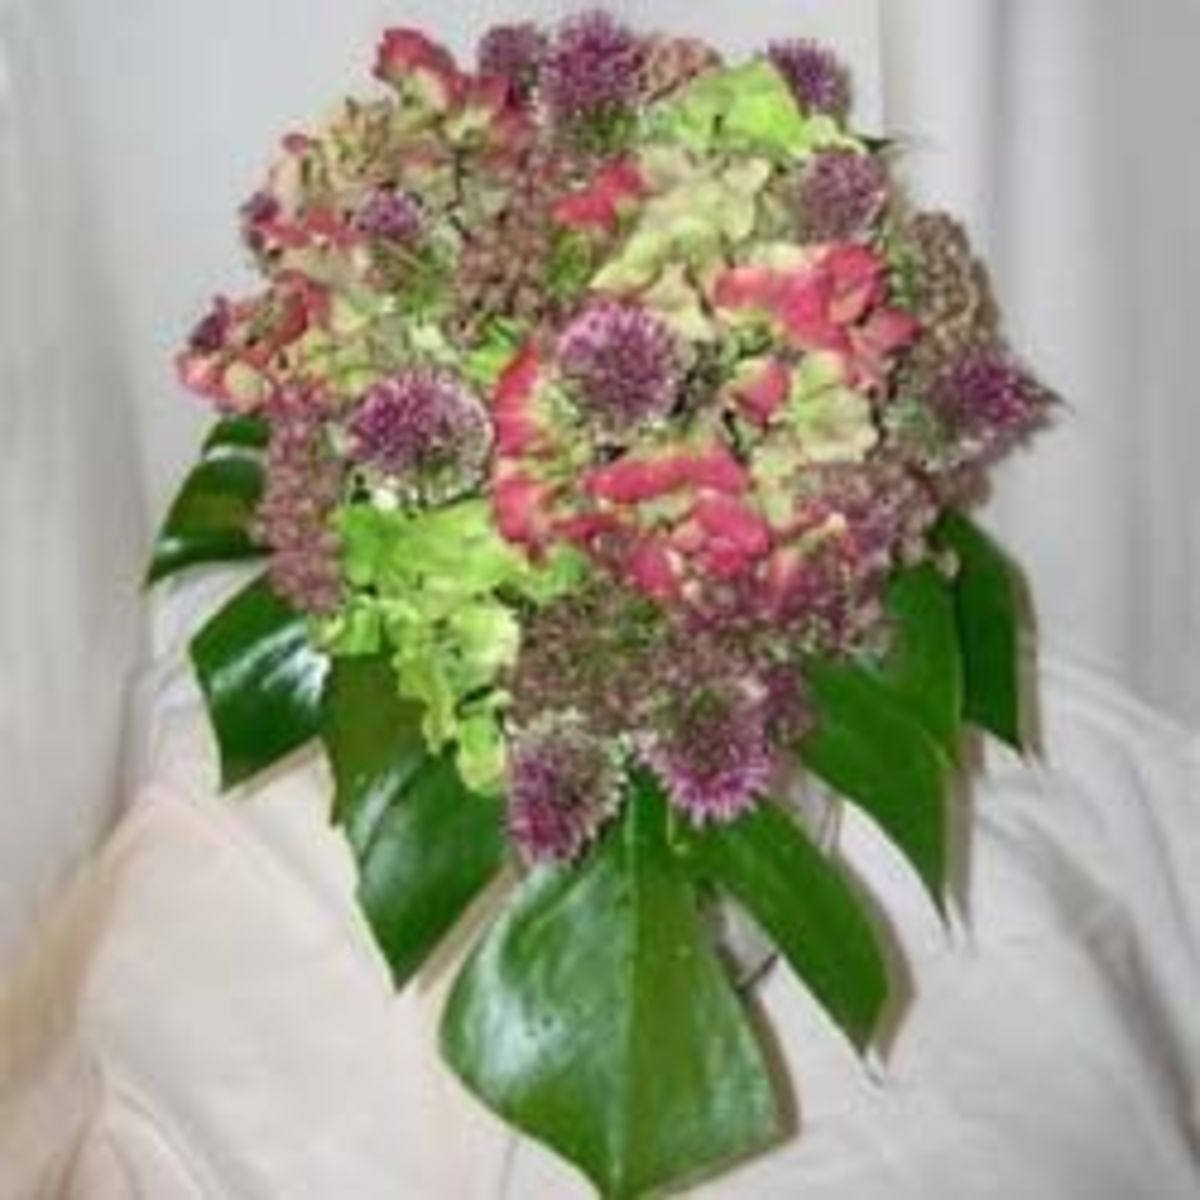 A late spring bridal bouquet crafted by the author